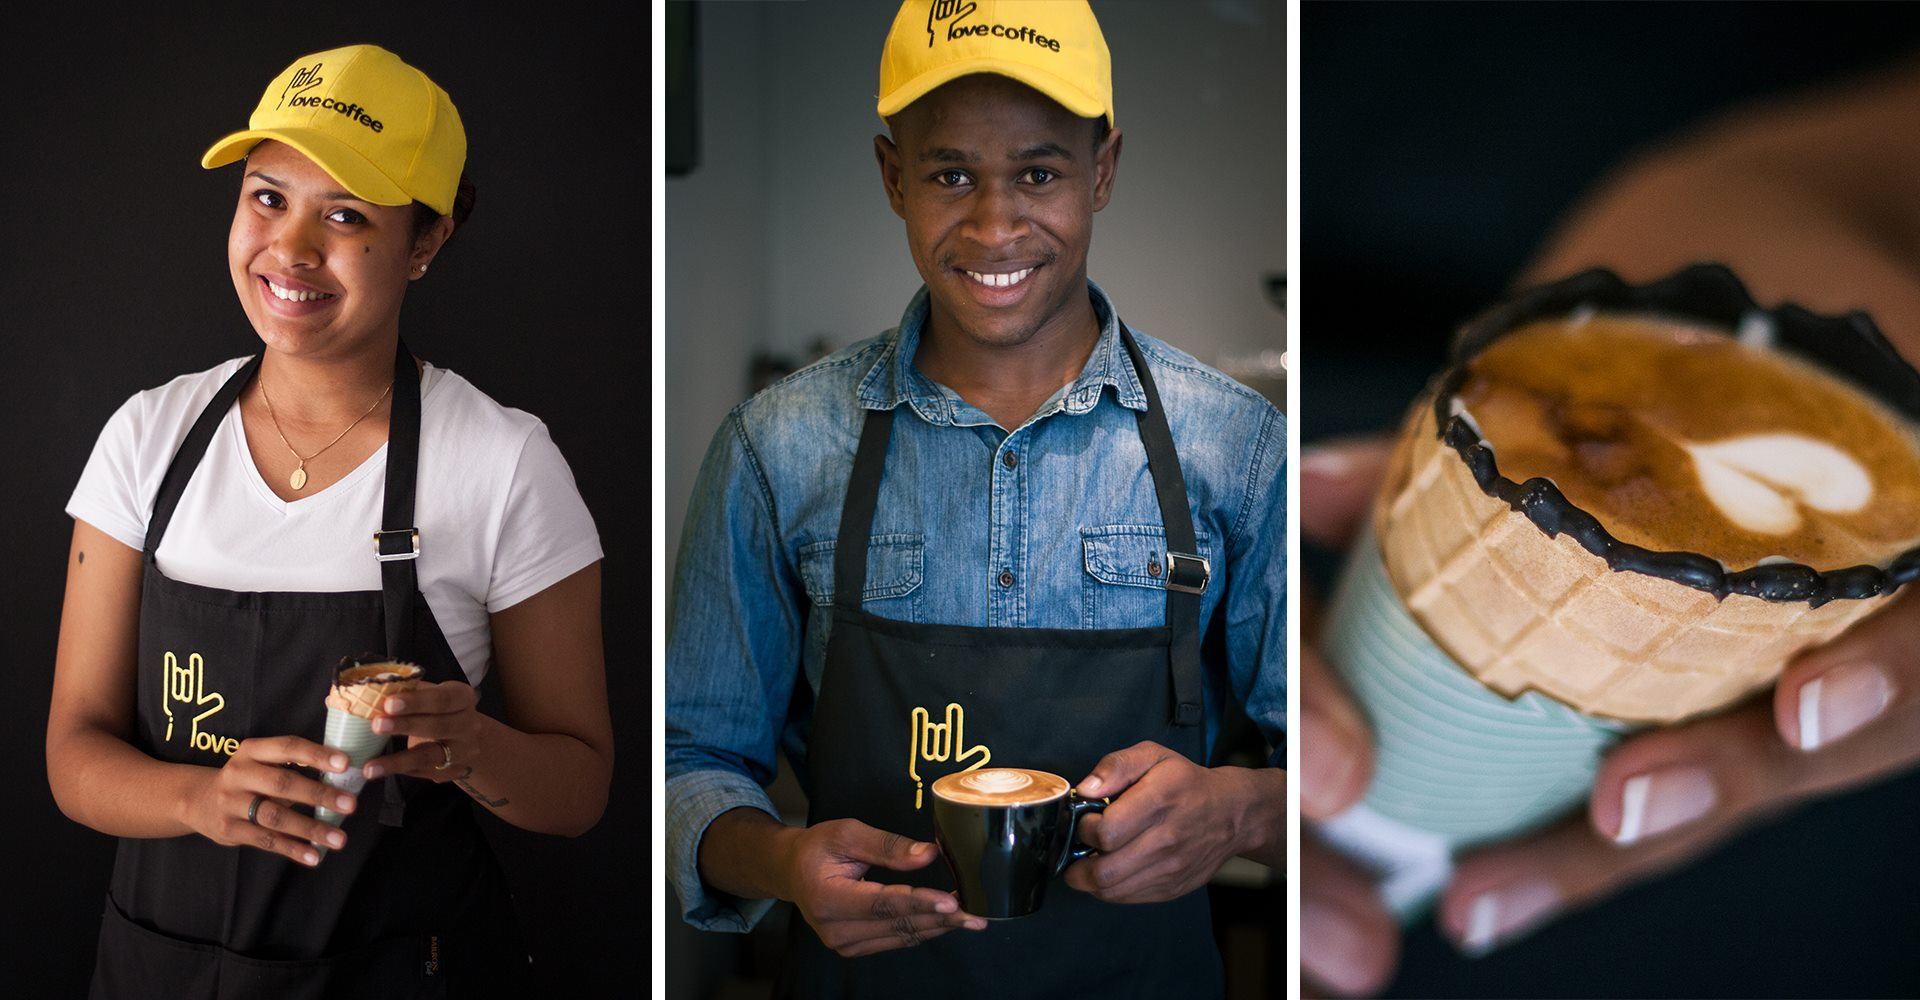 Cape Town's Most Caring Coffee Brand photo